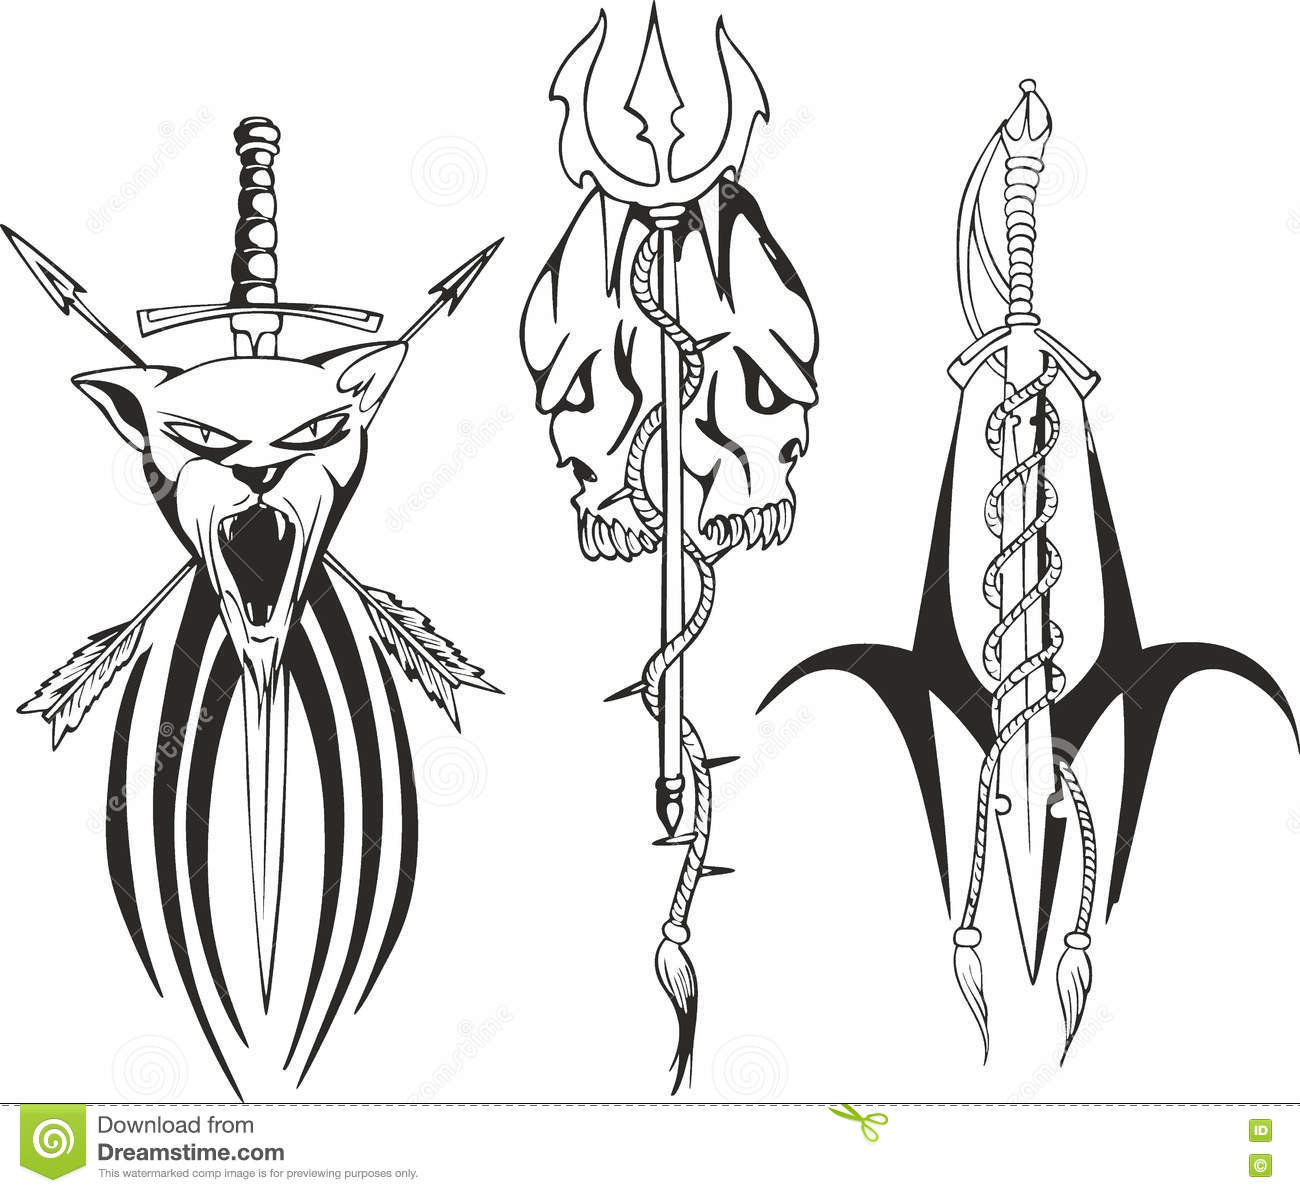 tattoo sketches with snakes daggers and skull cartoon